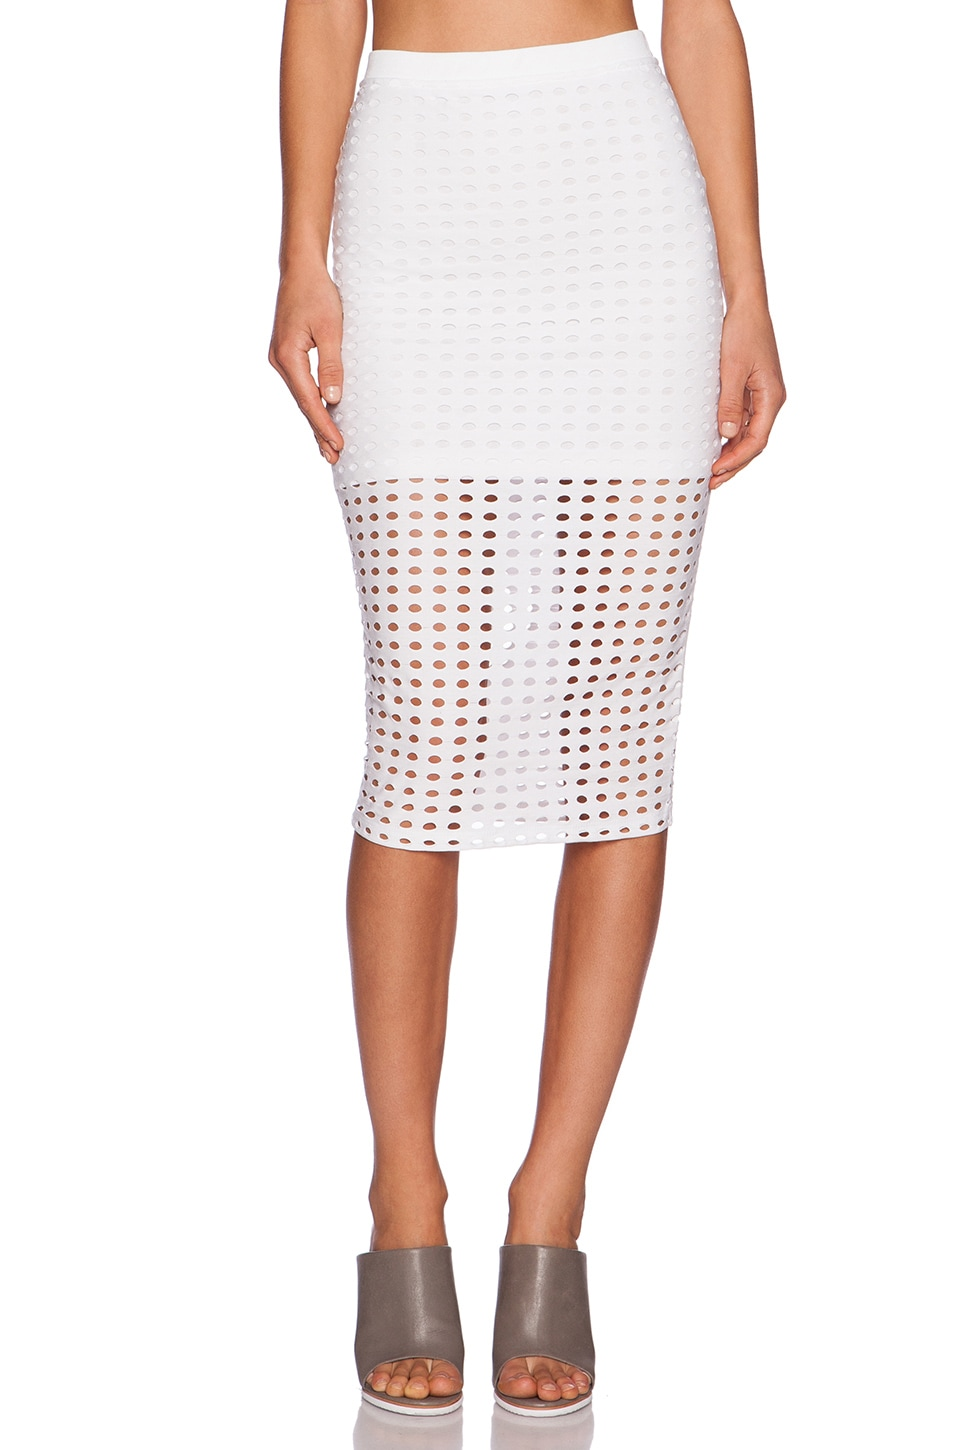 T by Alexander Wang Circular Hole Skirt in White